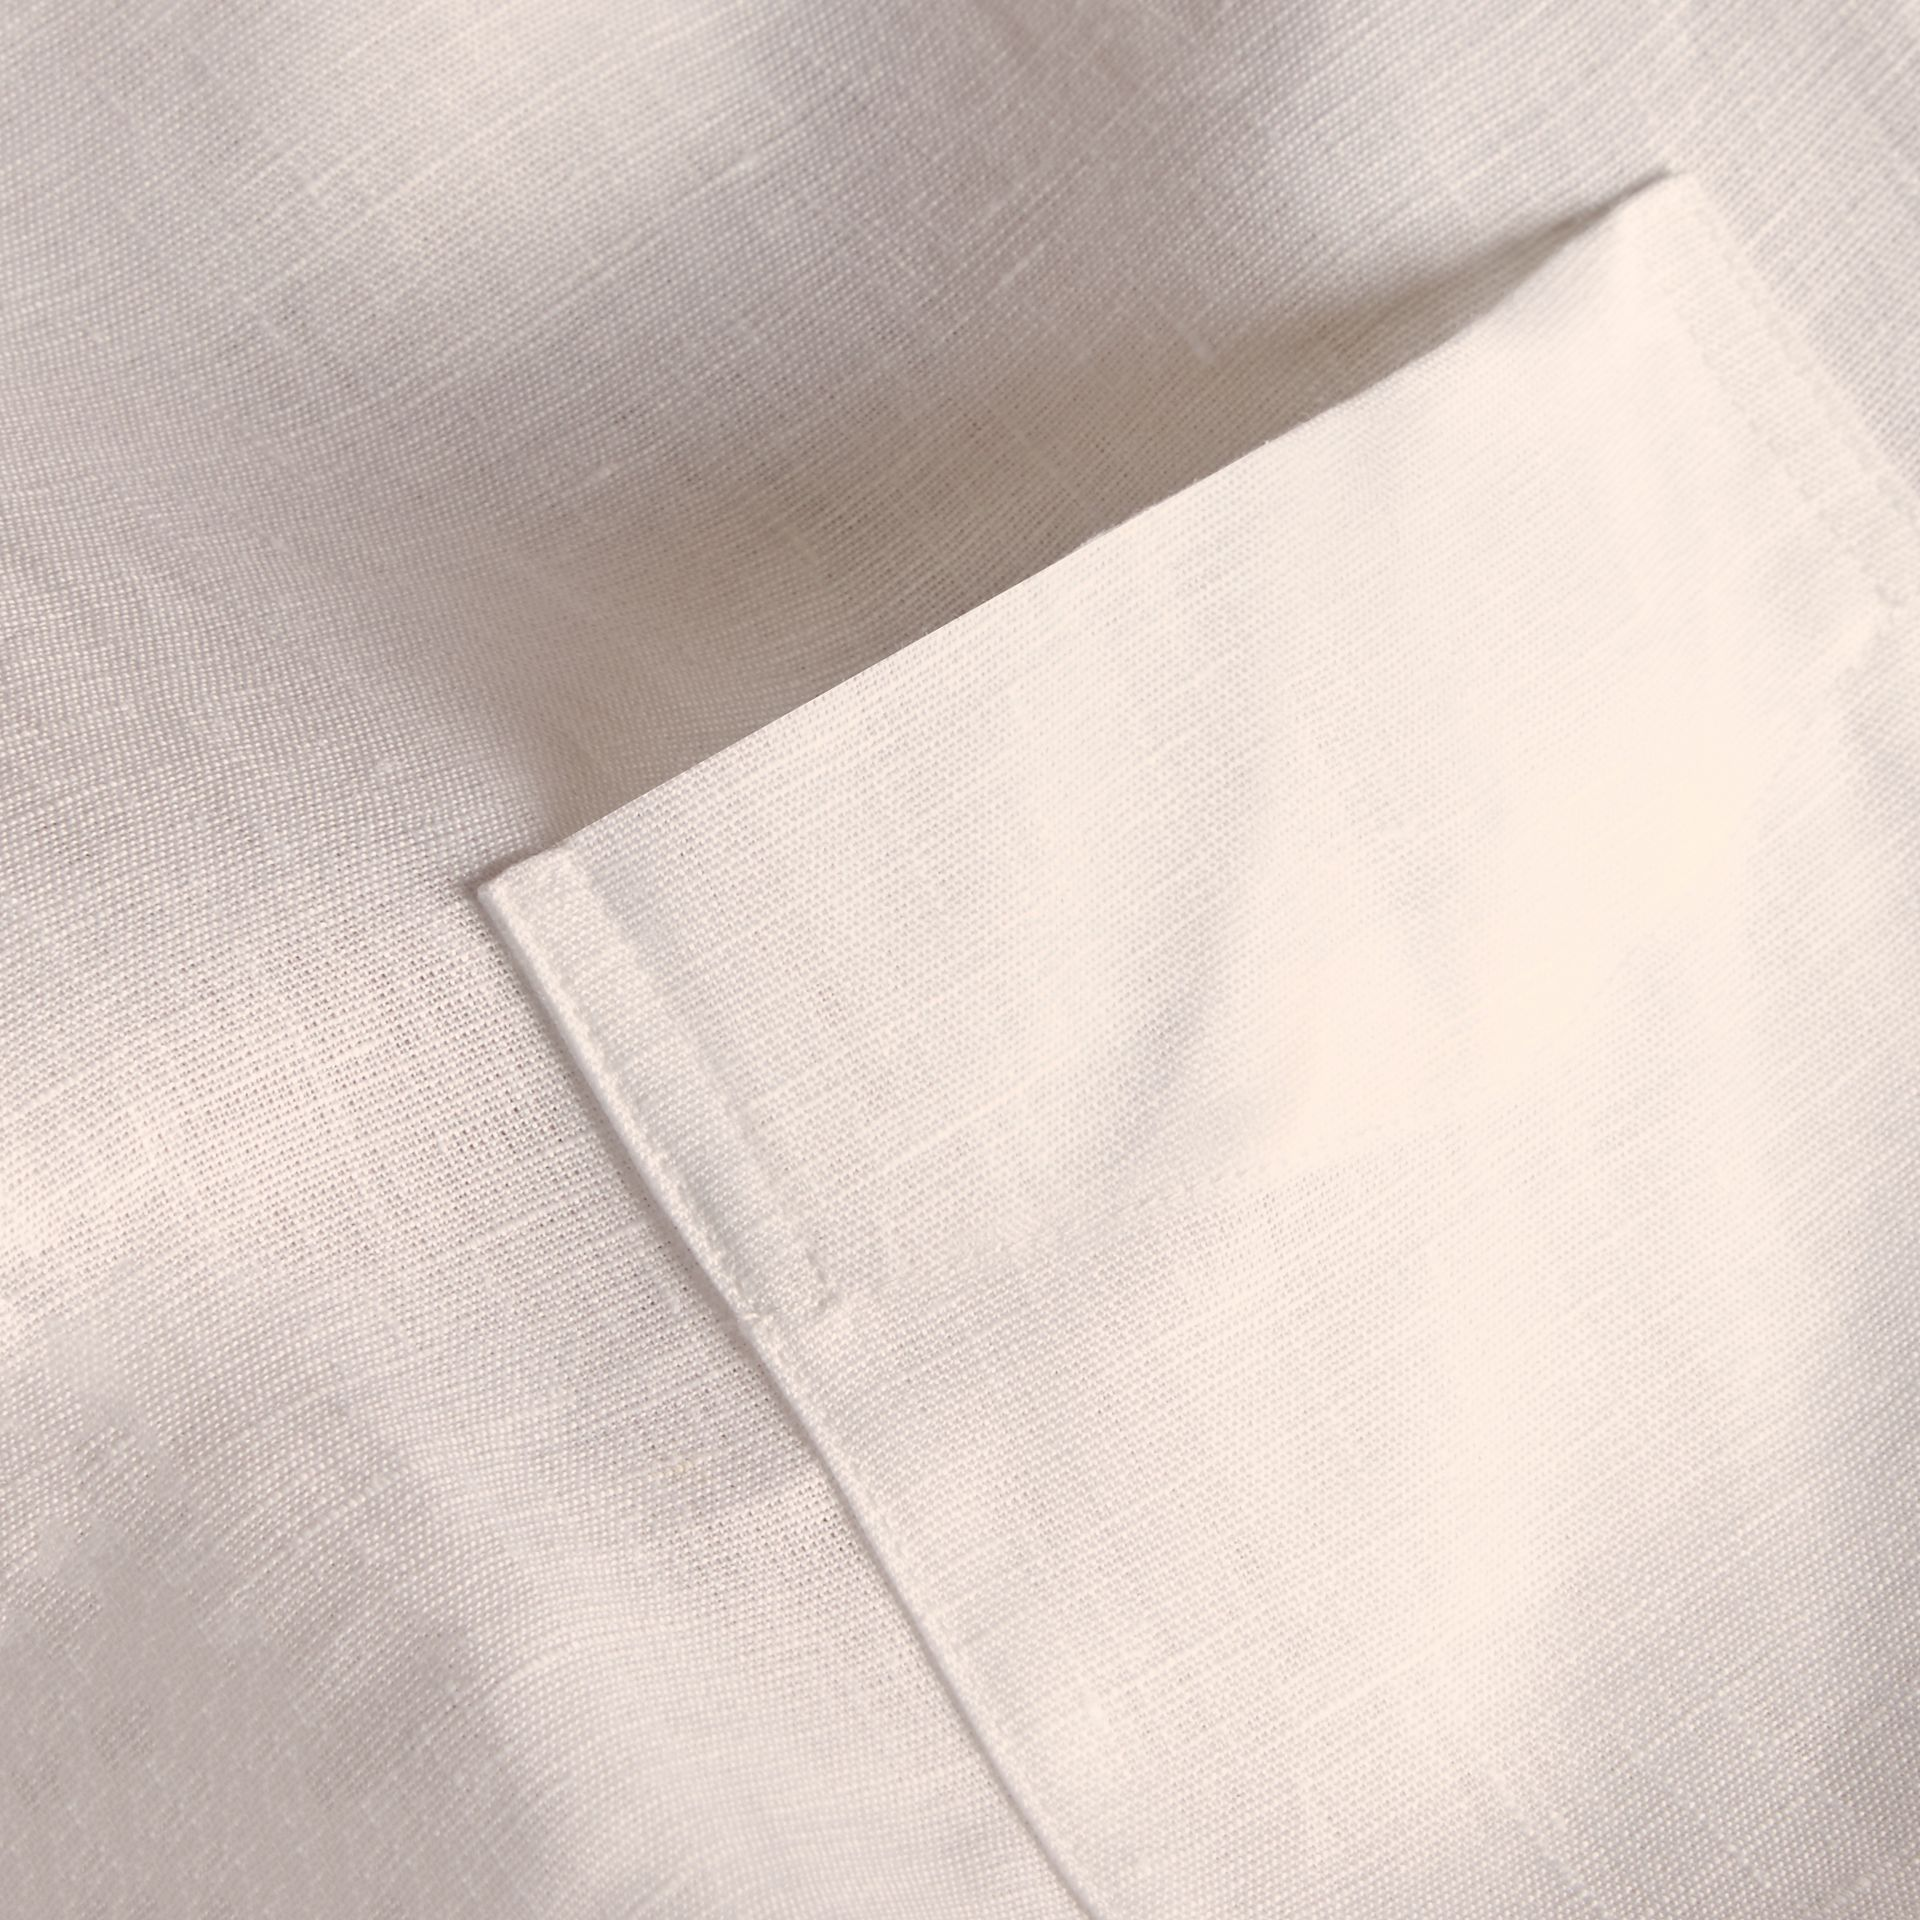 Check Detail Linen Shirt in White - Men | Burberry Singapore - gallery image 2